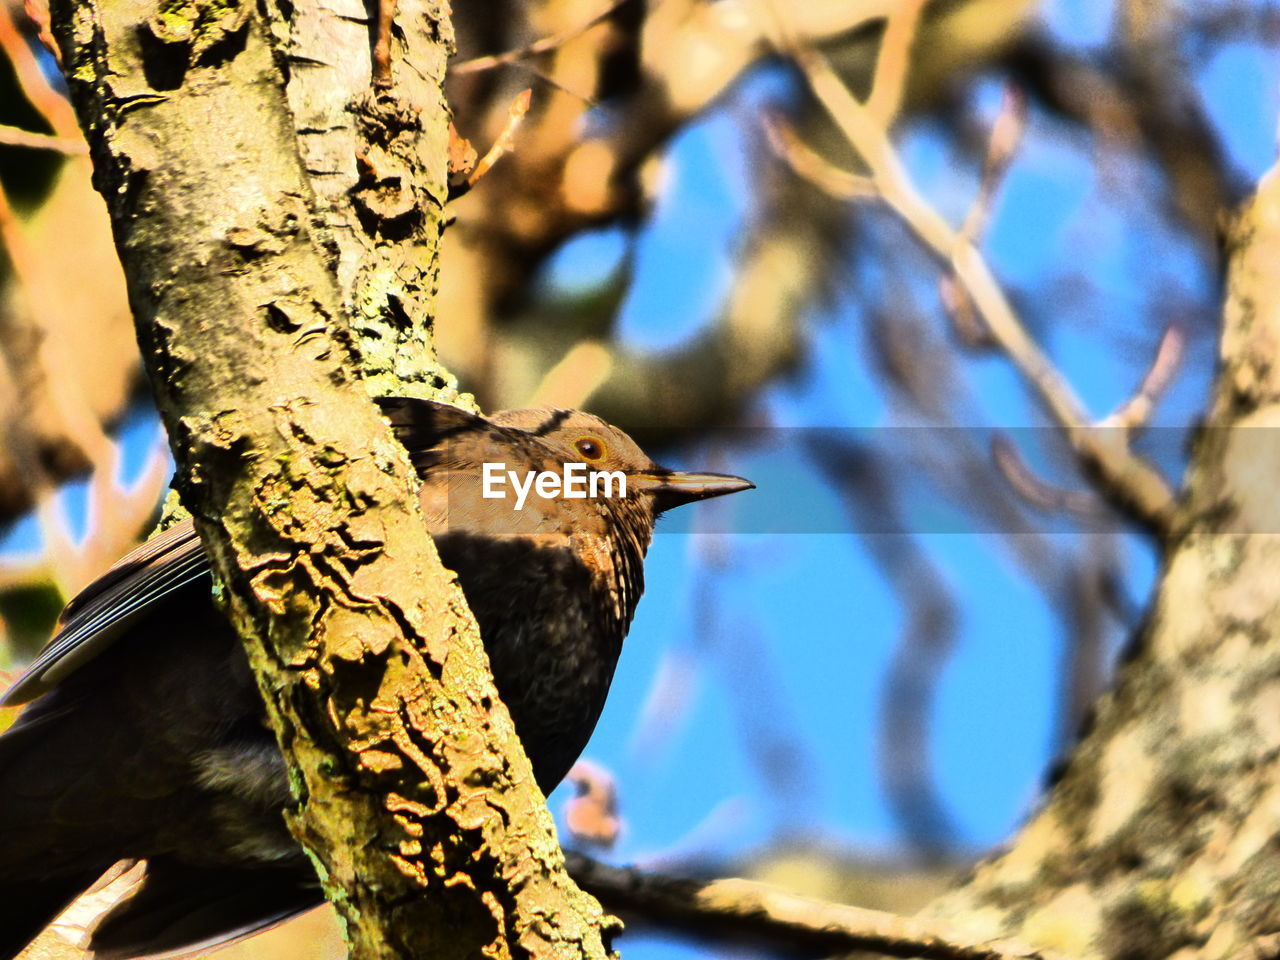 bird, tree, tree trunk, animal themes, animals in the wild, one animal, focus on foreground, branch, woodpecker, nature, day, animal wildlife, no people, outdoors, close-up, sunlight, low angle view, perching, beauty in nature, bird feeder